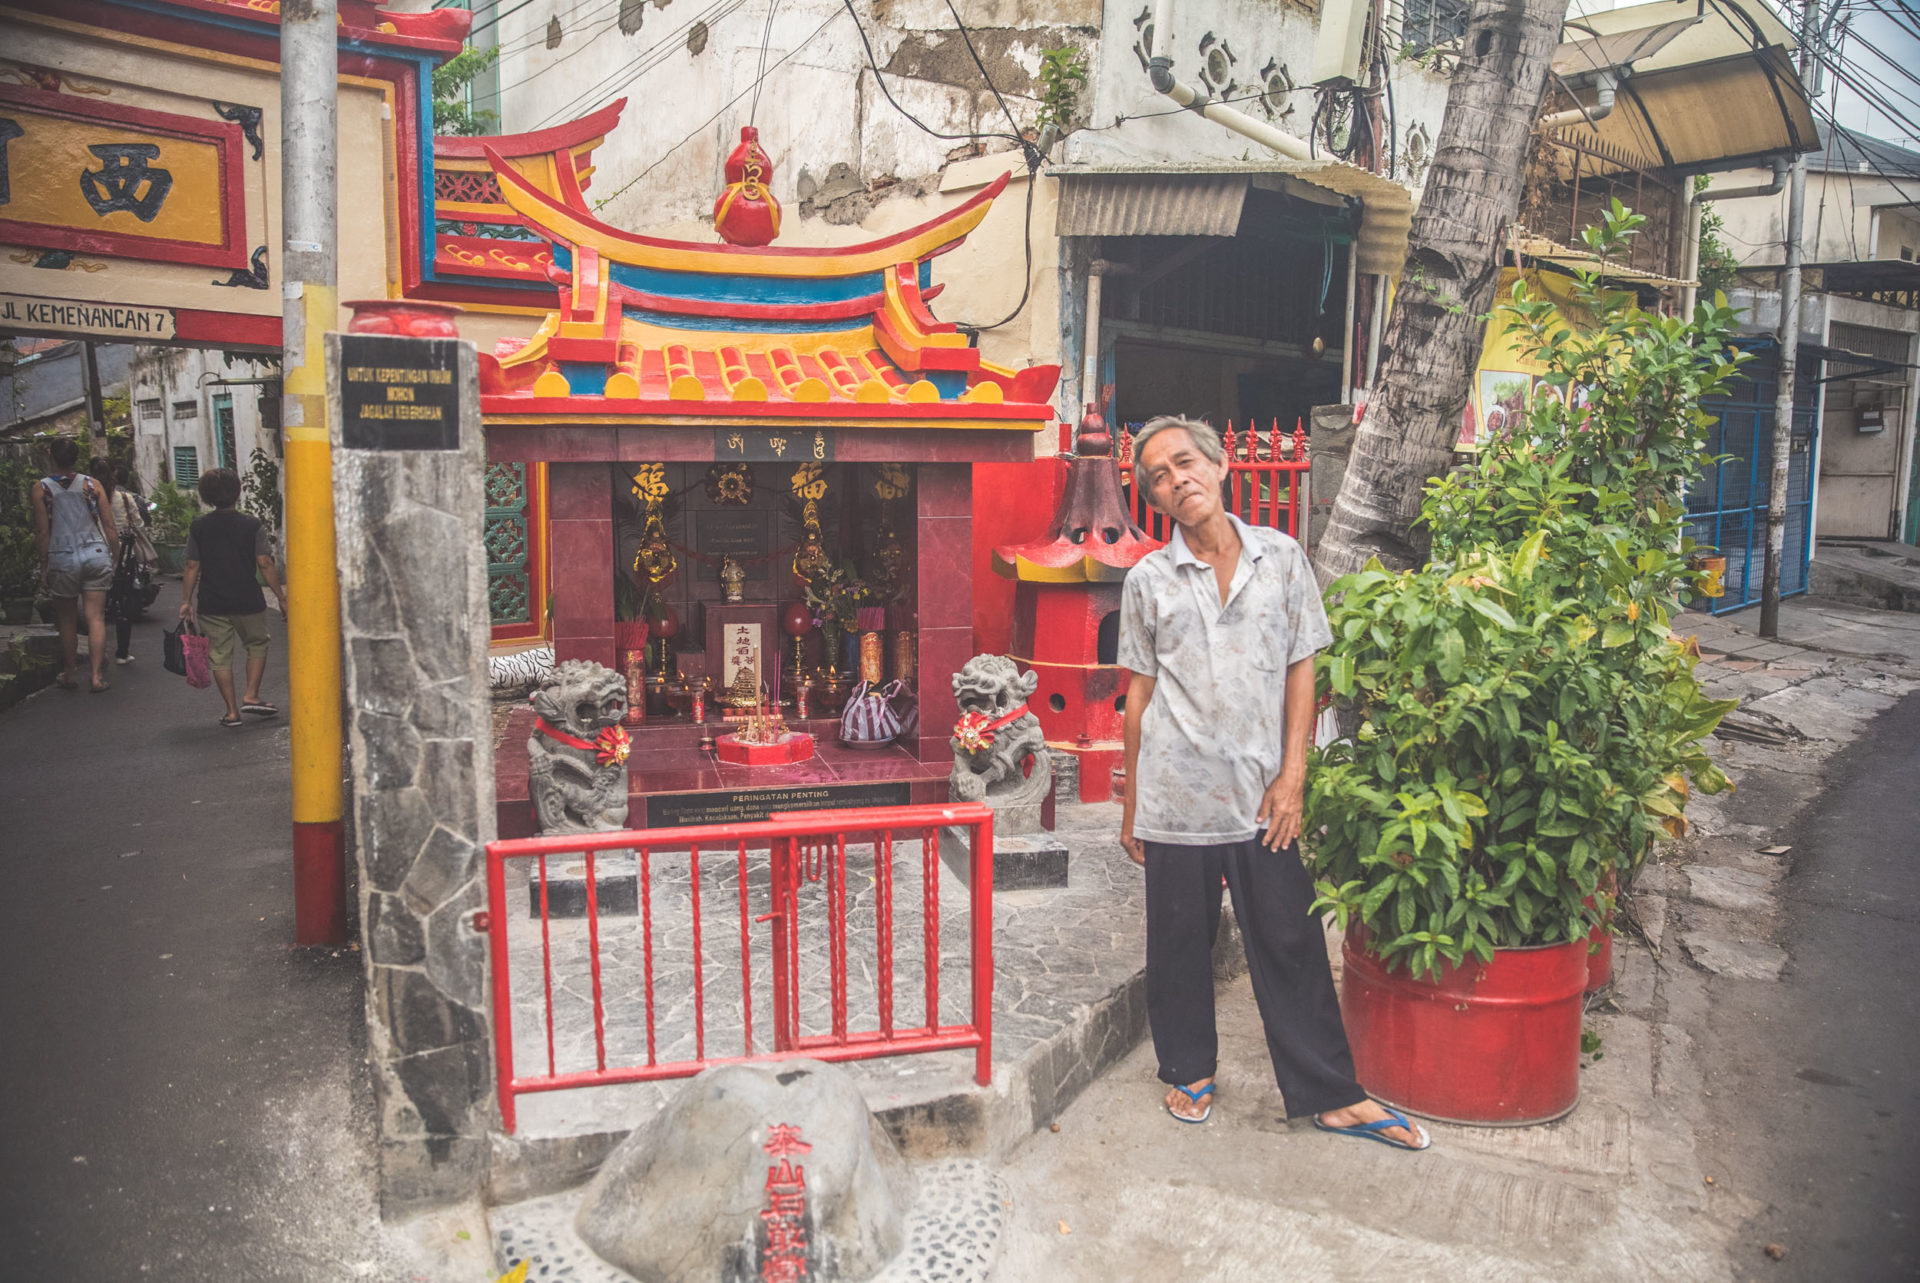 A shrine with two statues and burning incense